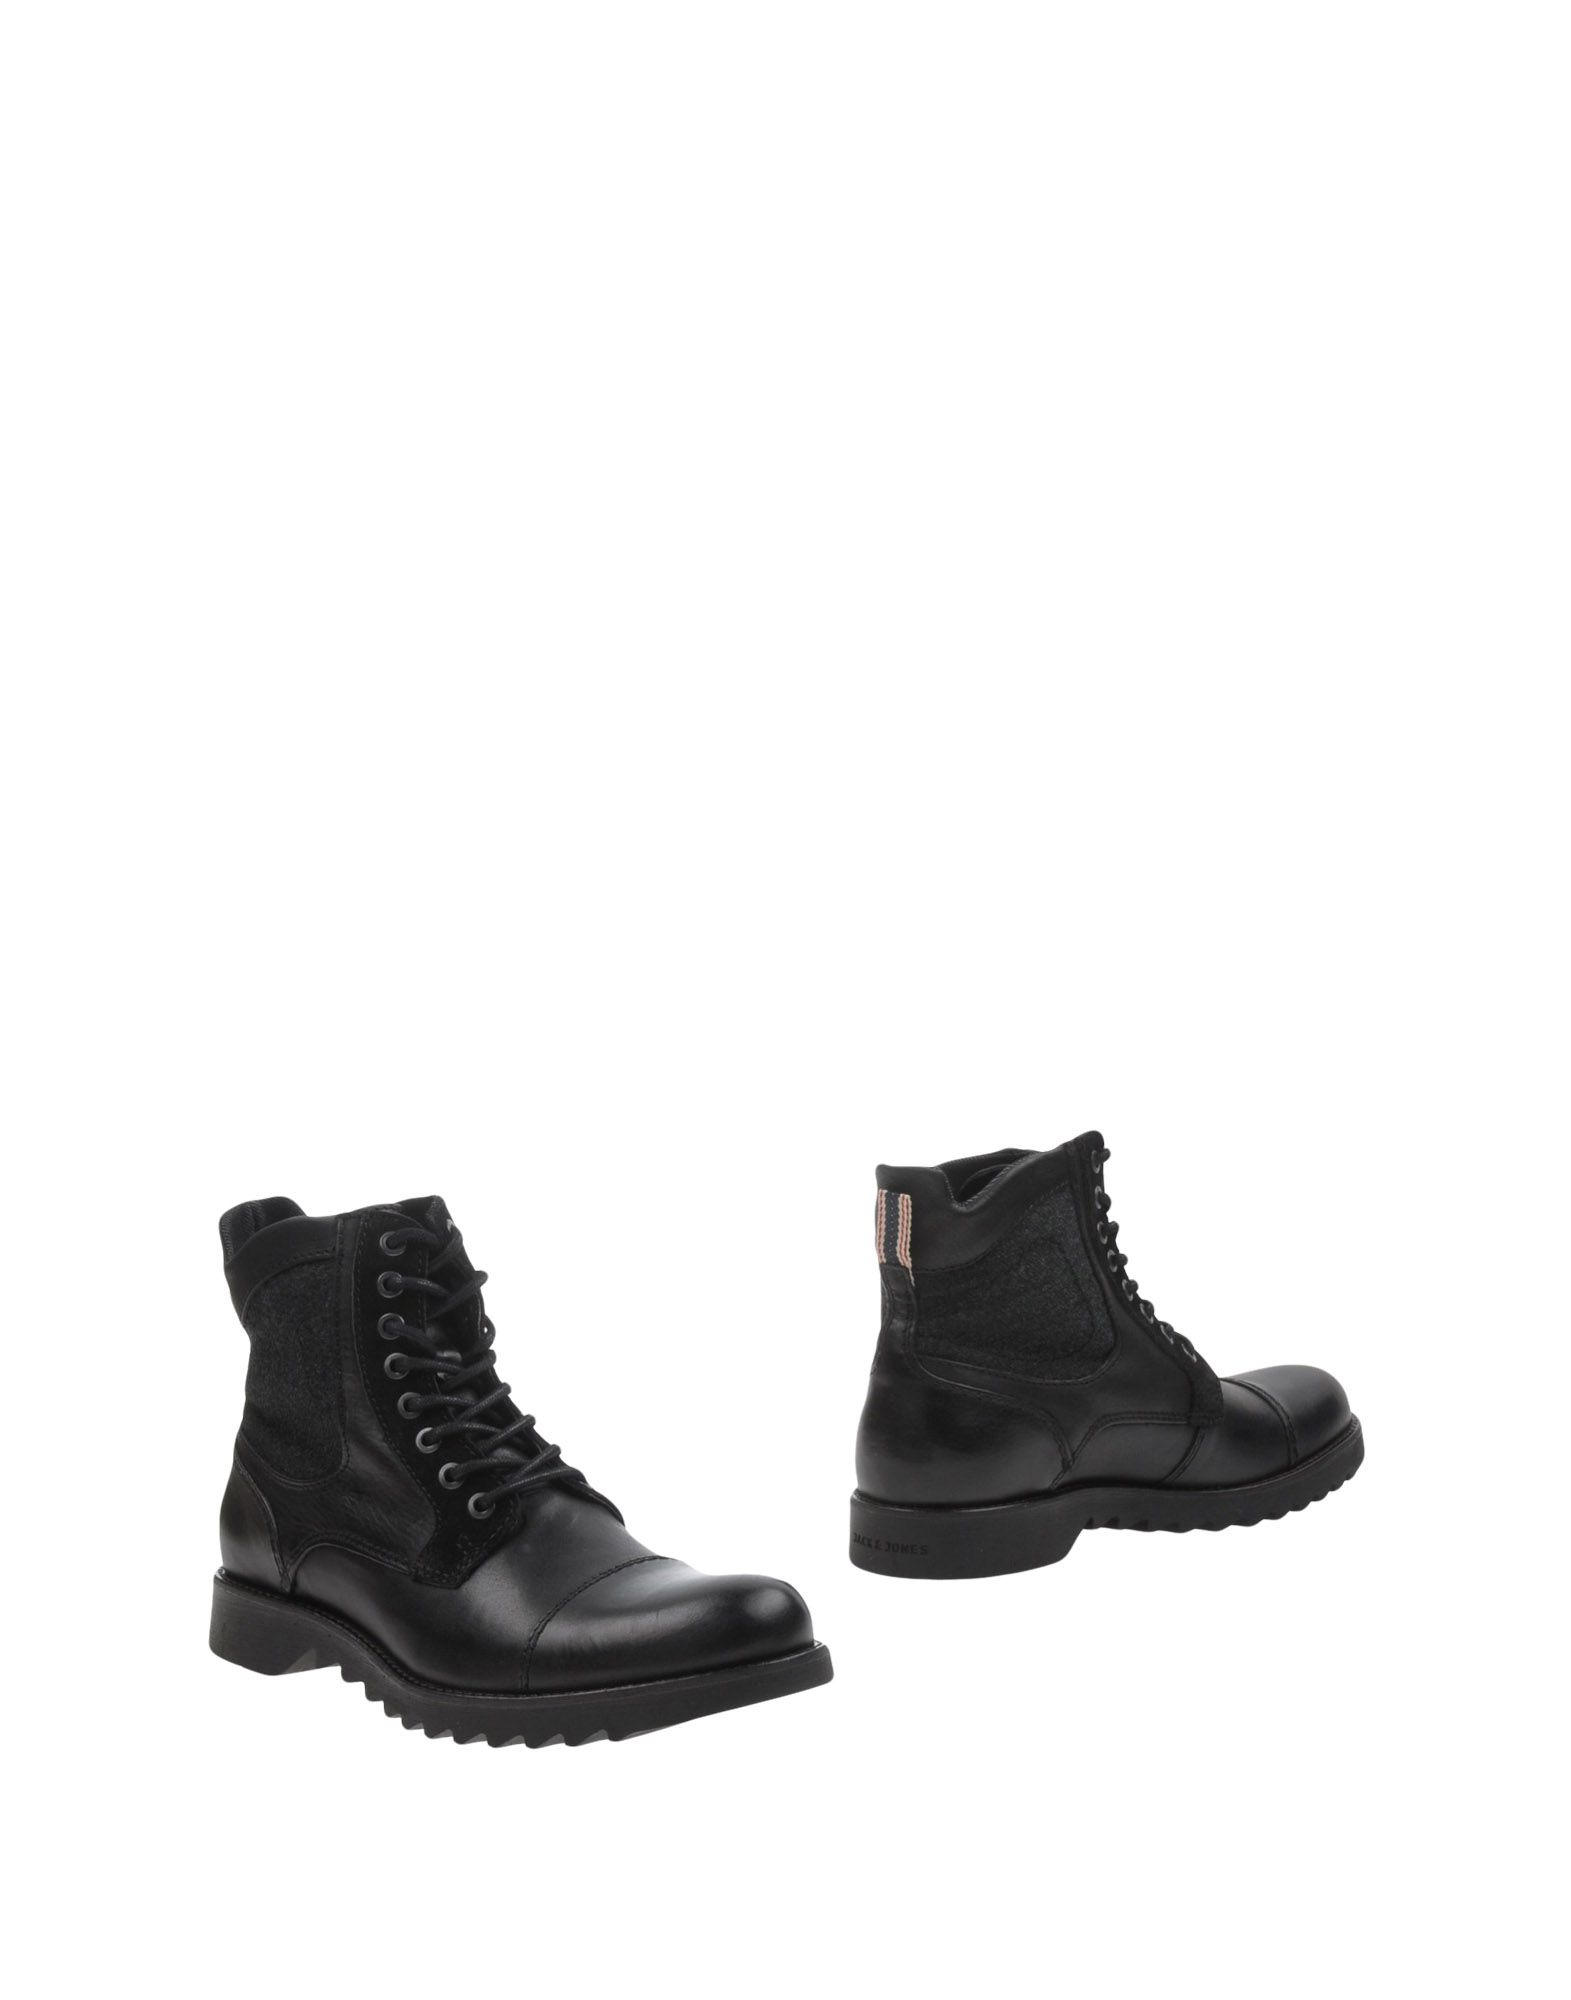 Bottine Jack & Jones Femme - Bottines Jack & Jones sur